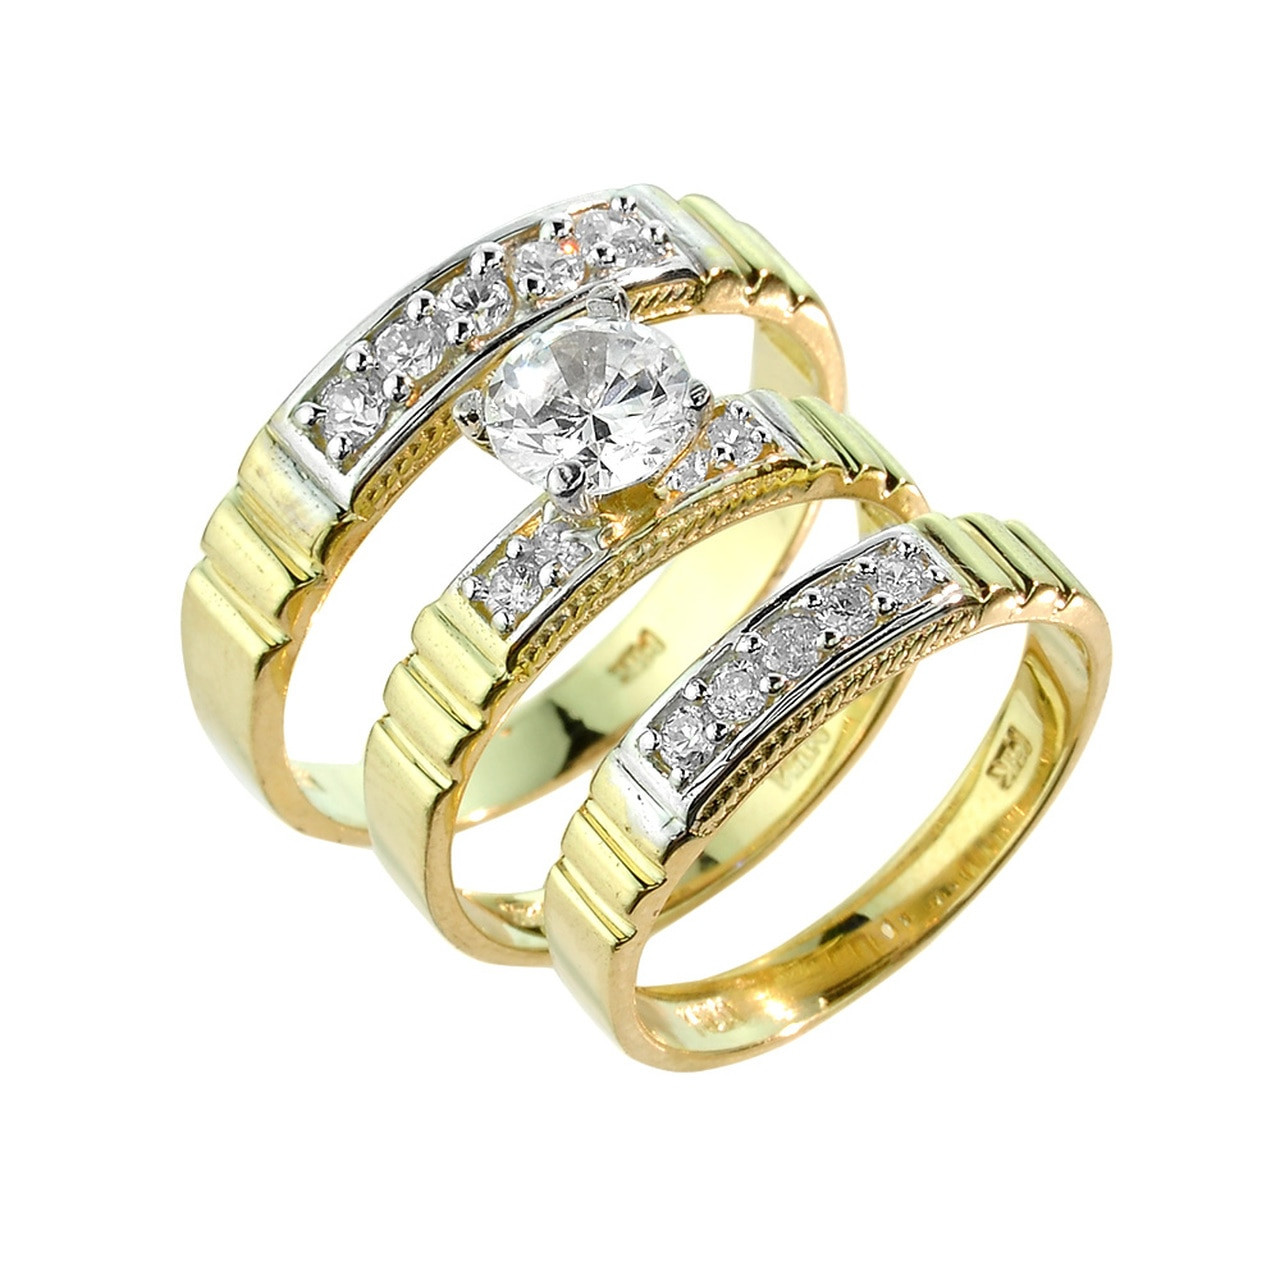 3 Piece Wedding Ring Set  Gold CZ Wedding Ring Set 3 Piece